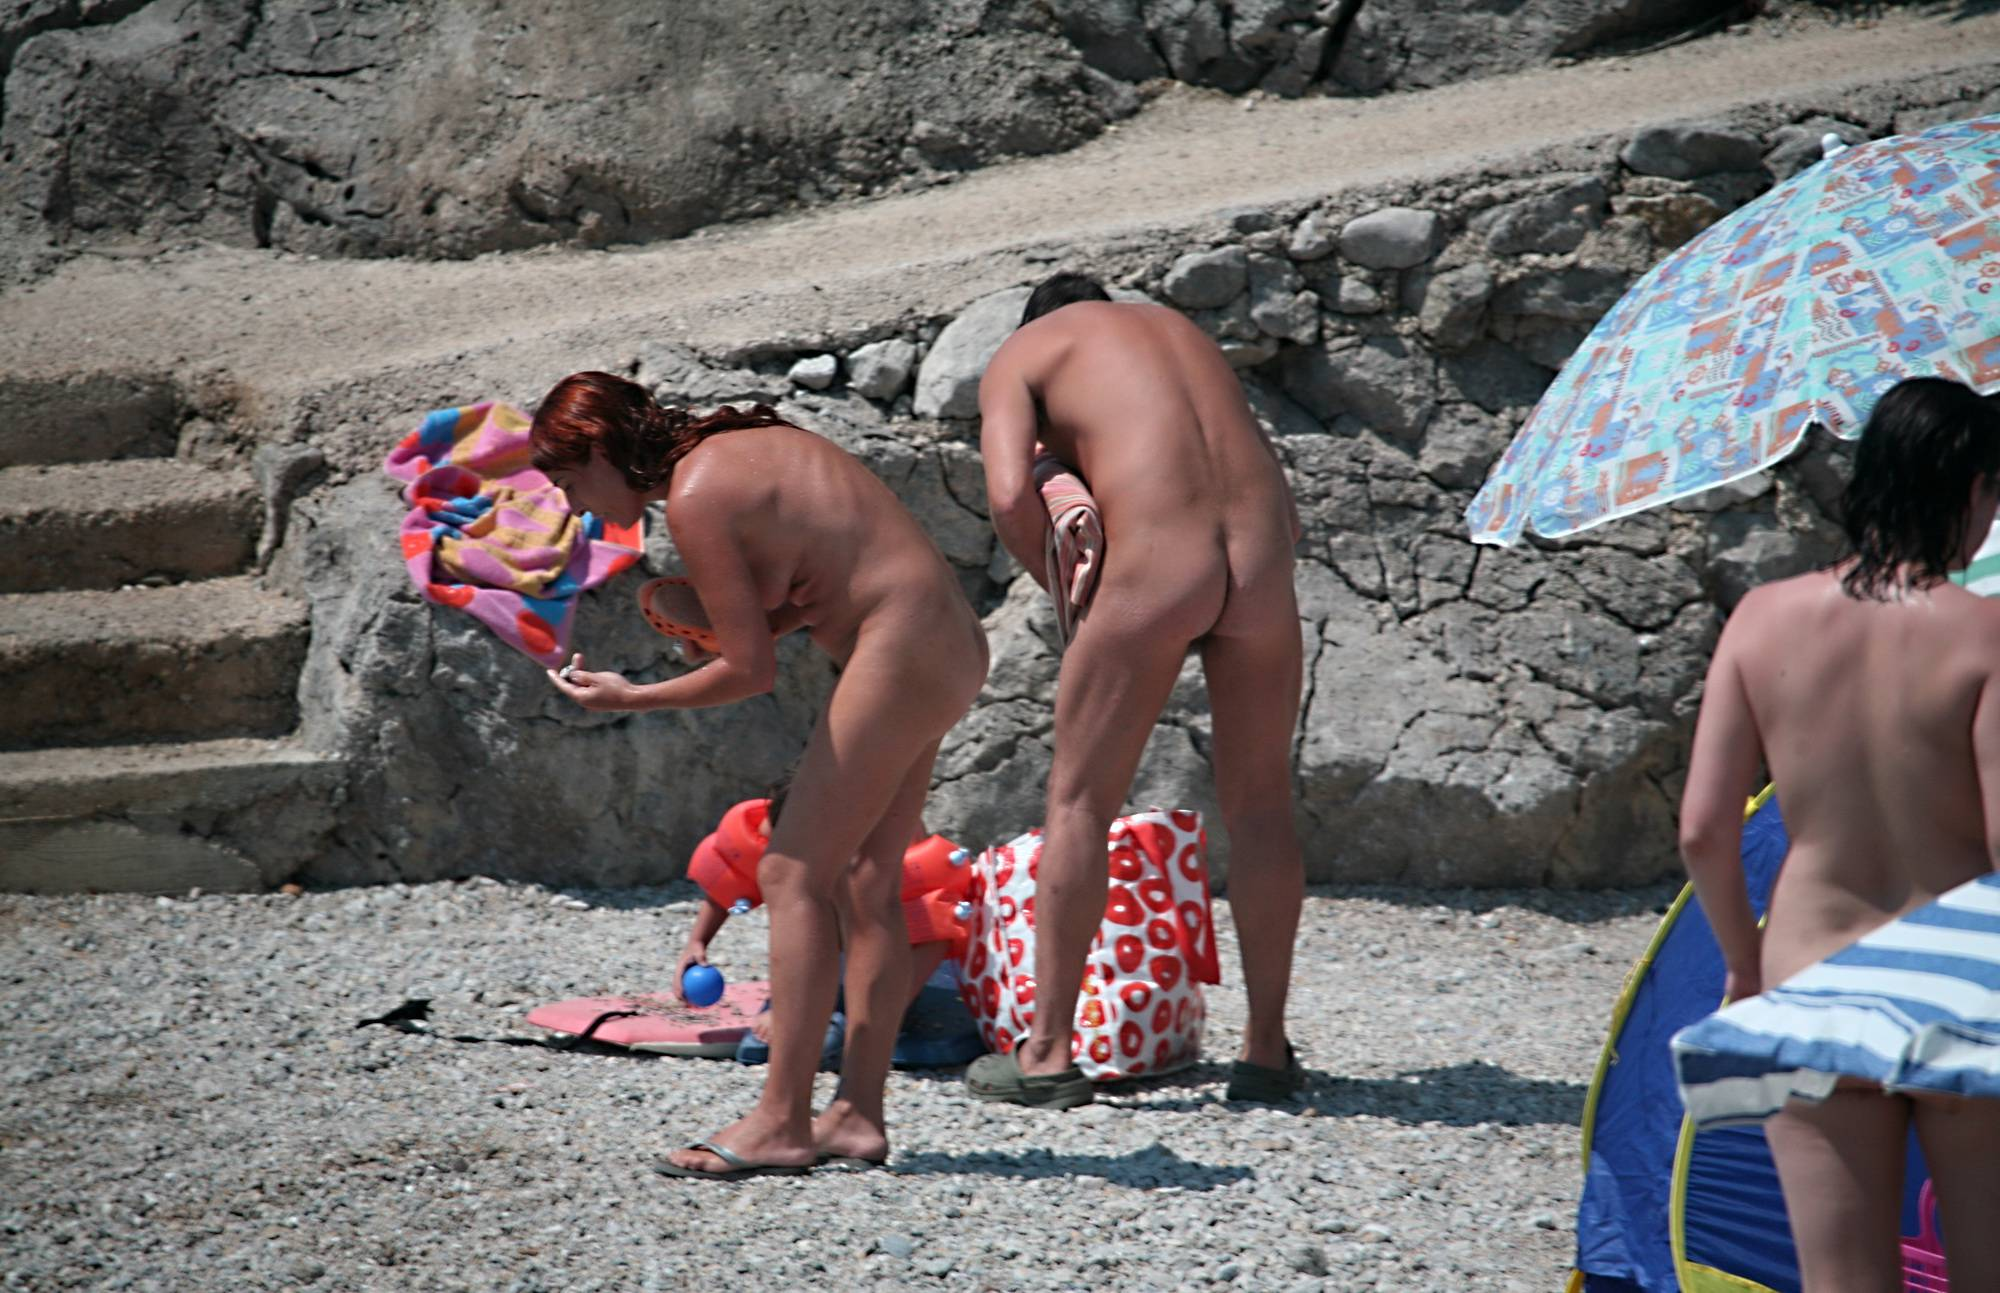 Naturist Family Packing Up - 1